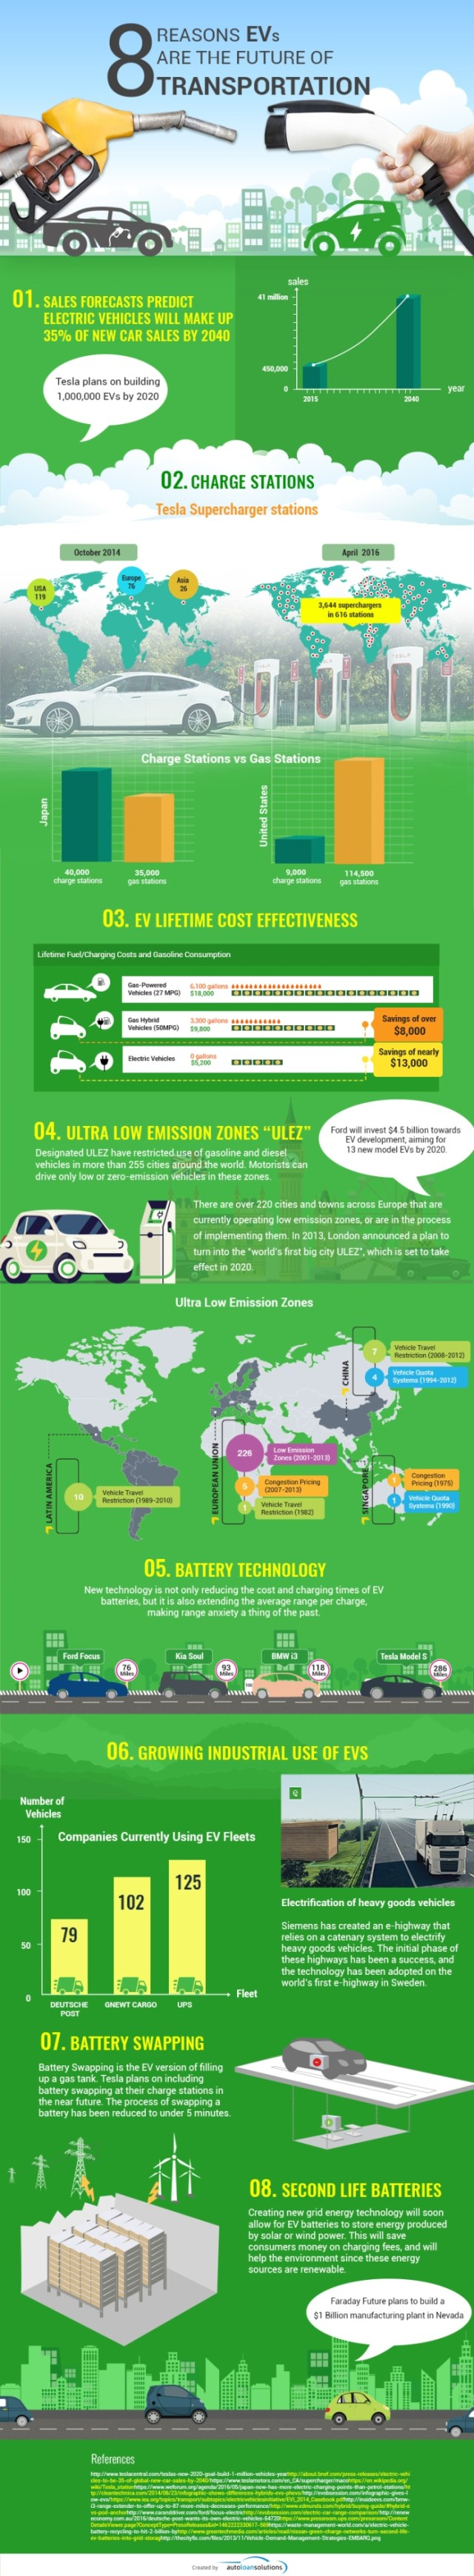 EVs are the Future of Transportation